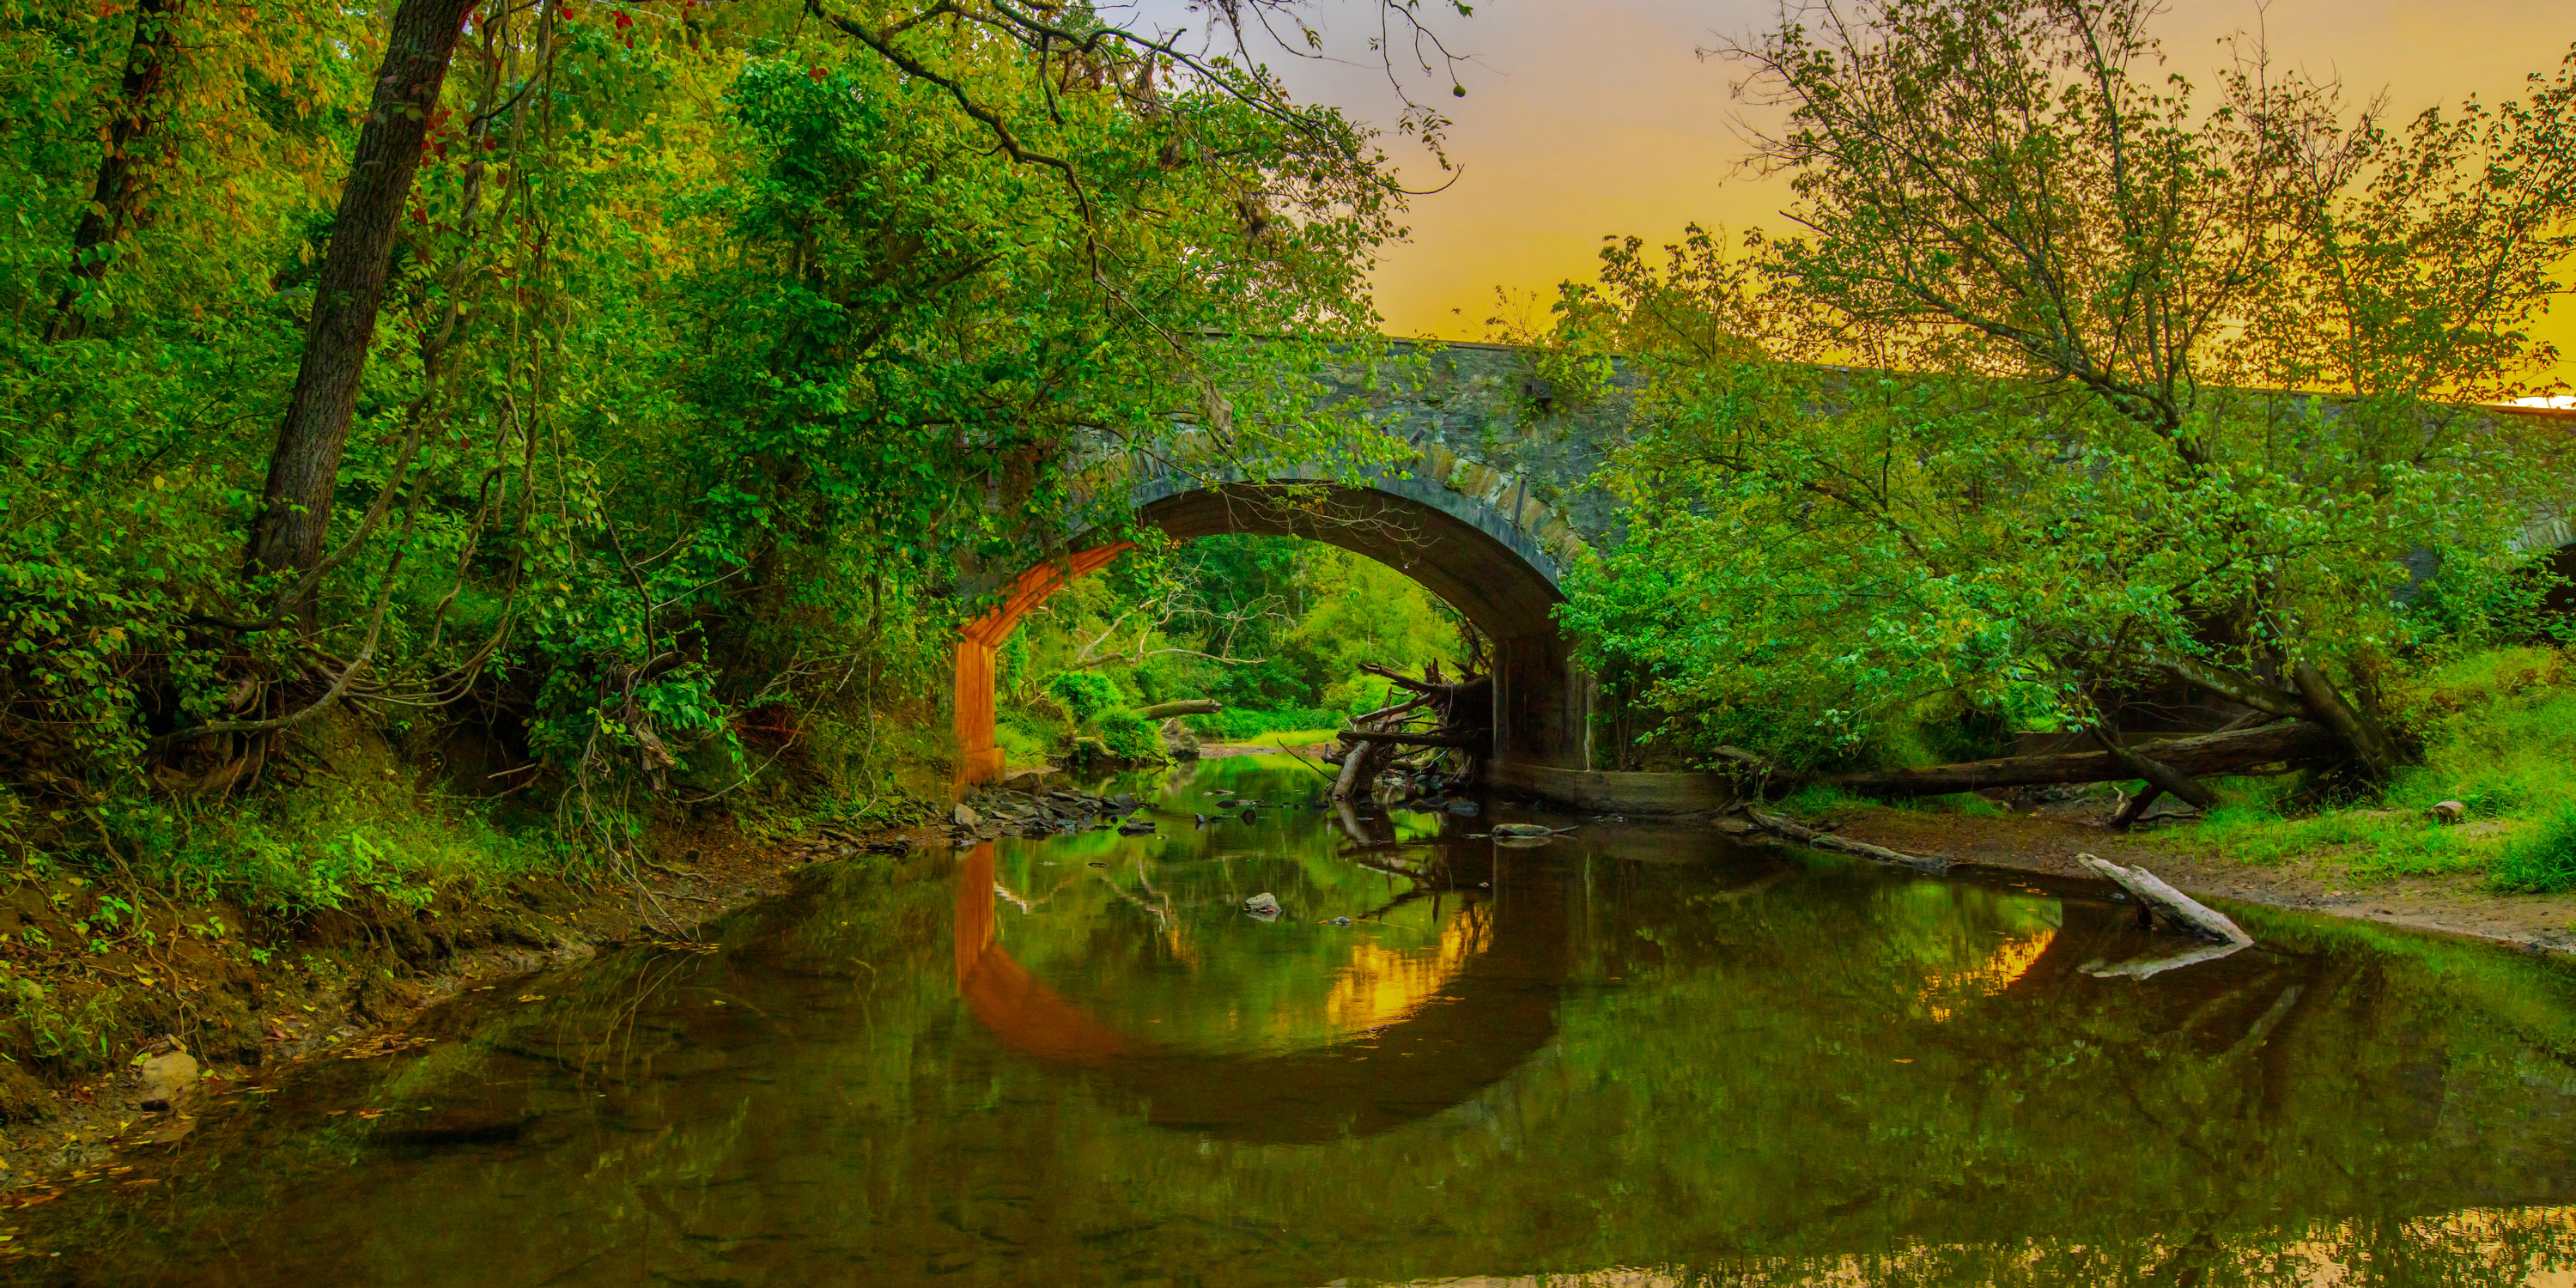 Chirieleison, MIke-Goose-Creek-Bridge_sm